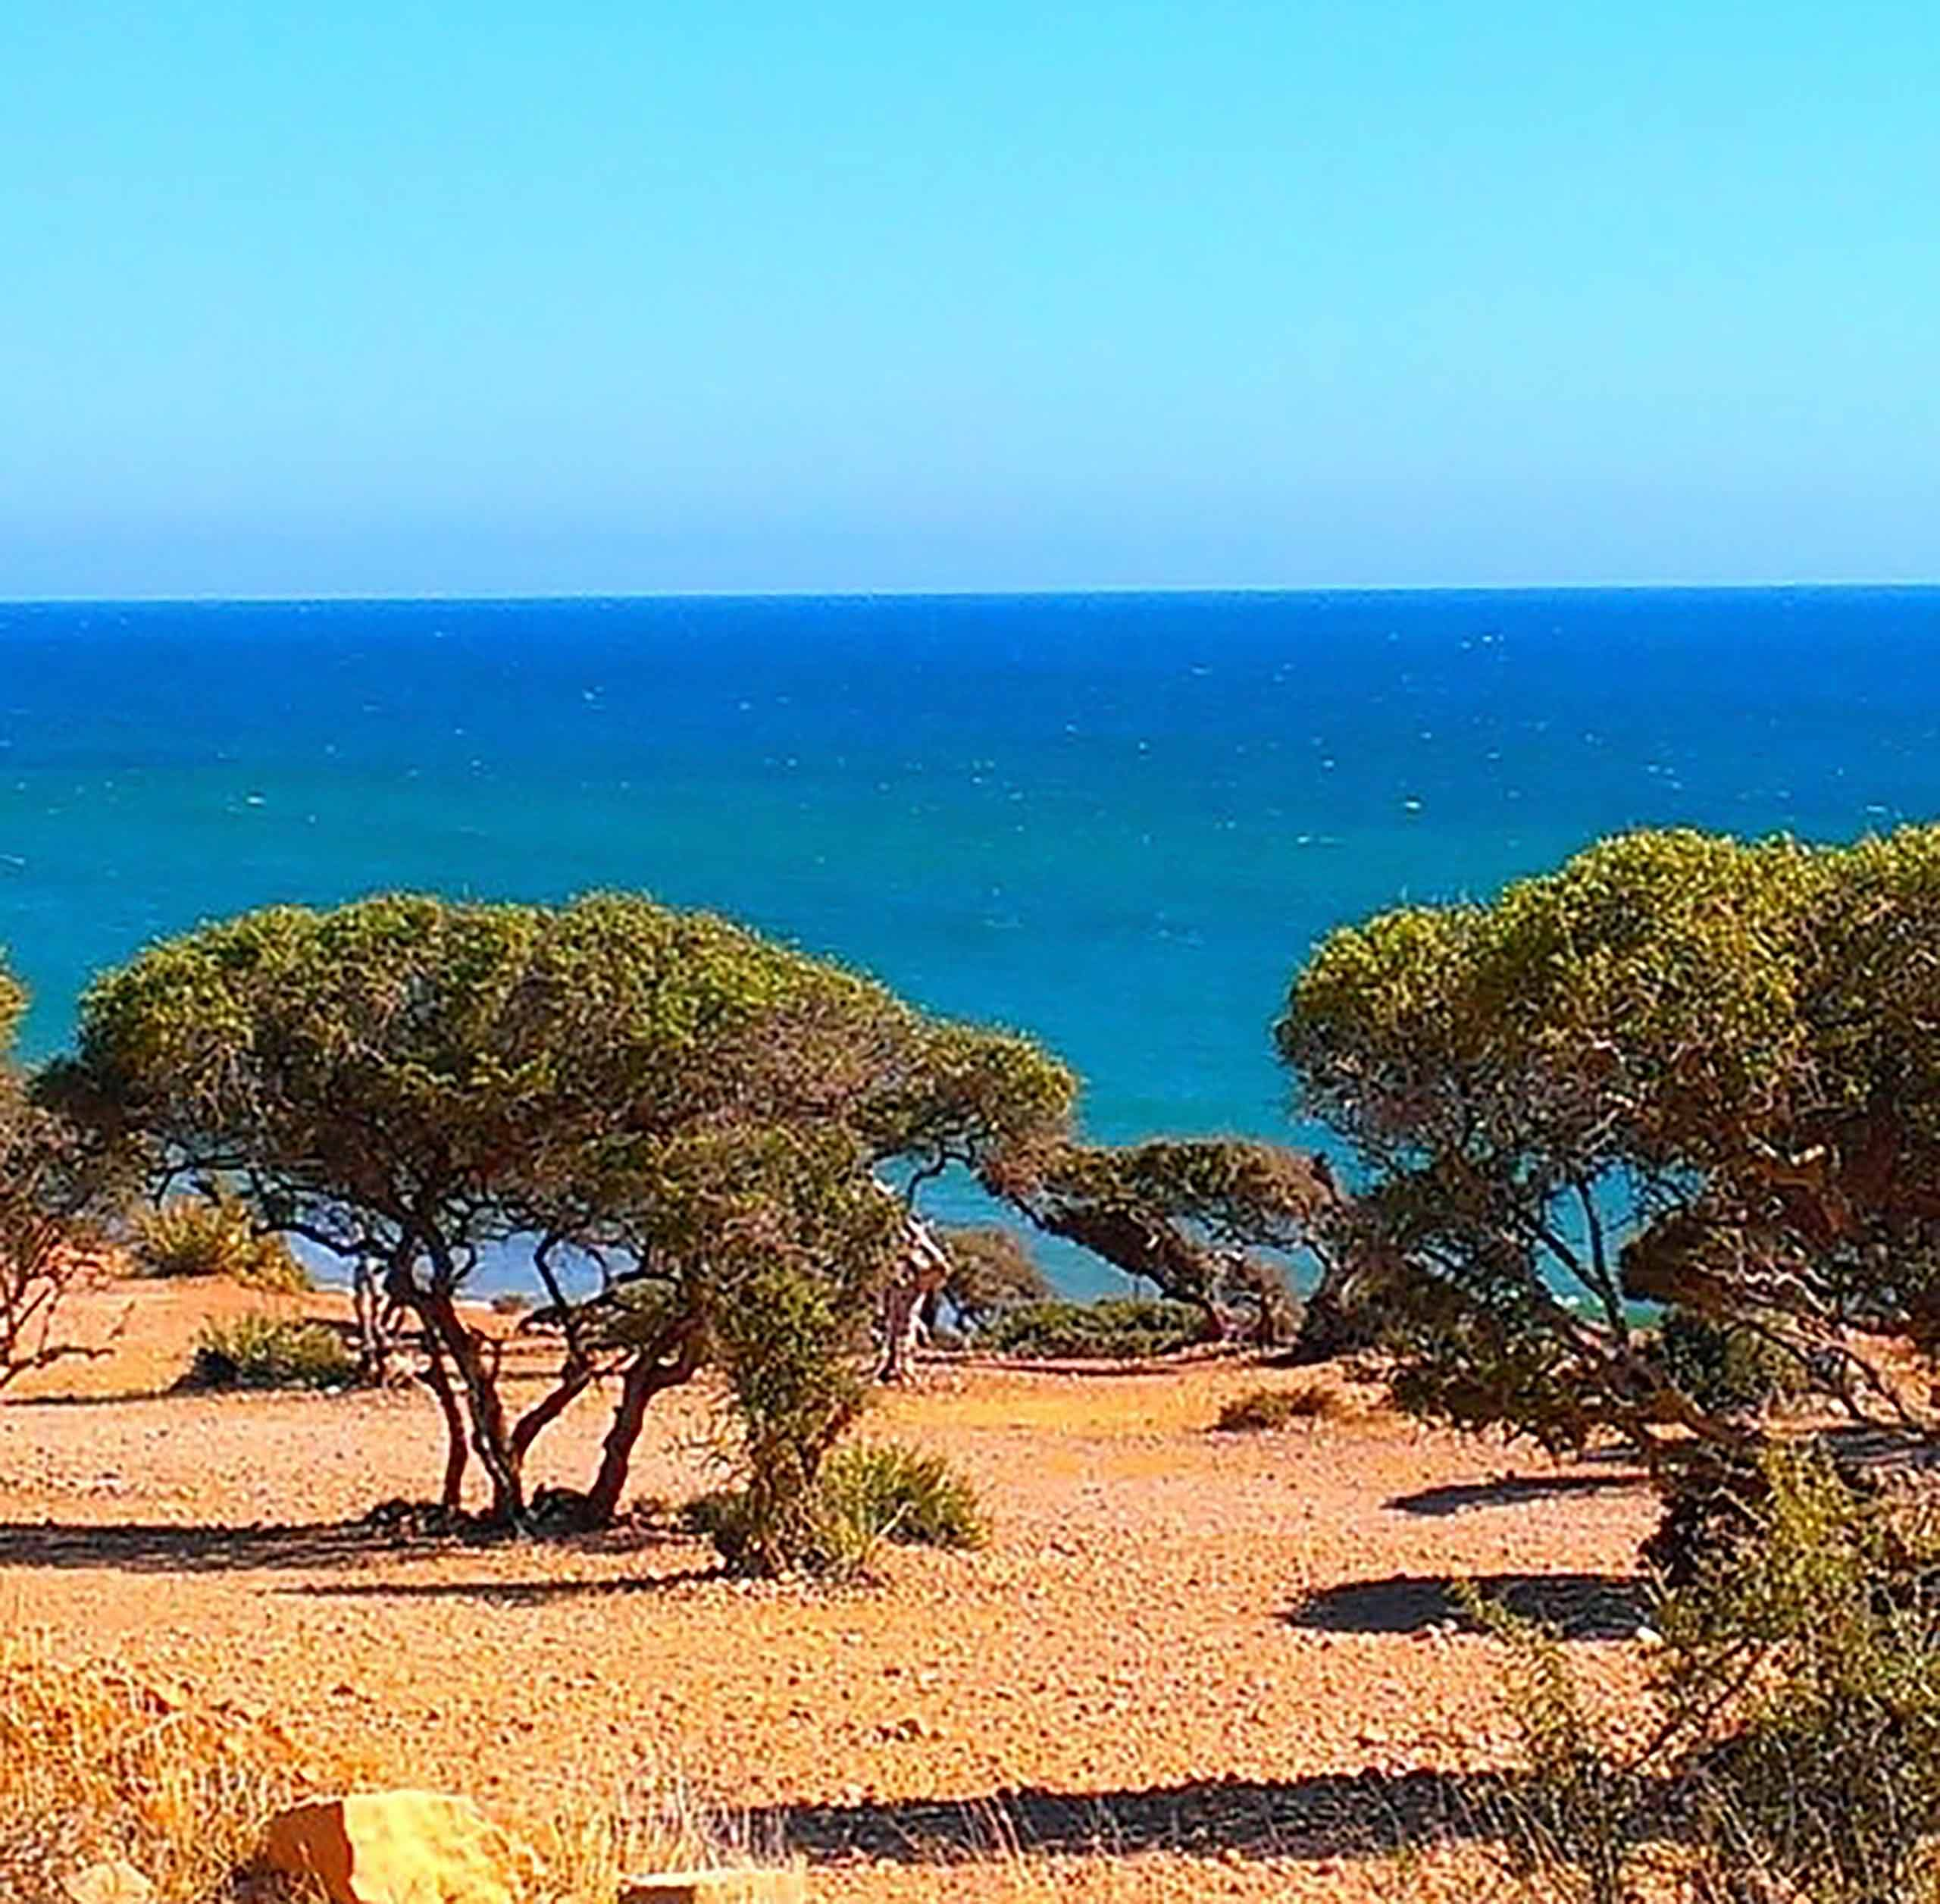 Trees on a desert landscape with the sea in the background